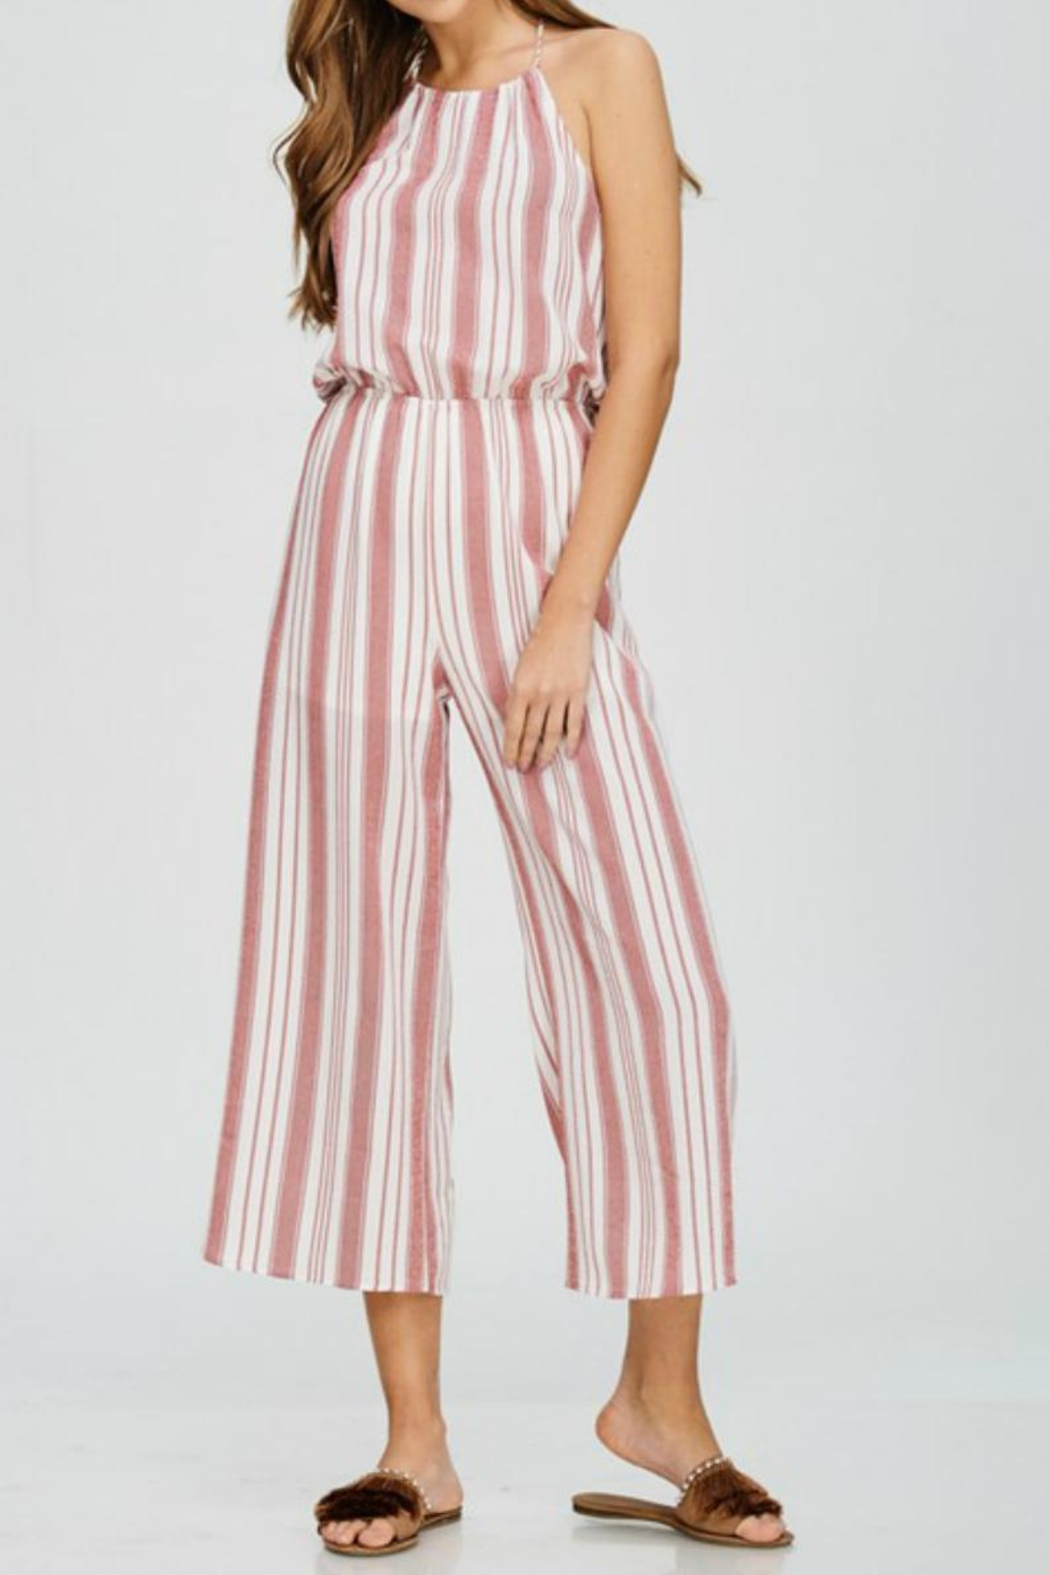 5140516a29be3 Emory Park Striped Jumpsuit from Tennessee by Threads — Shoptiques